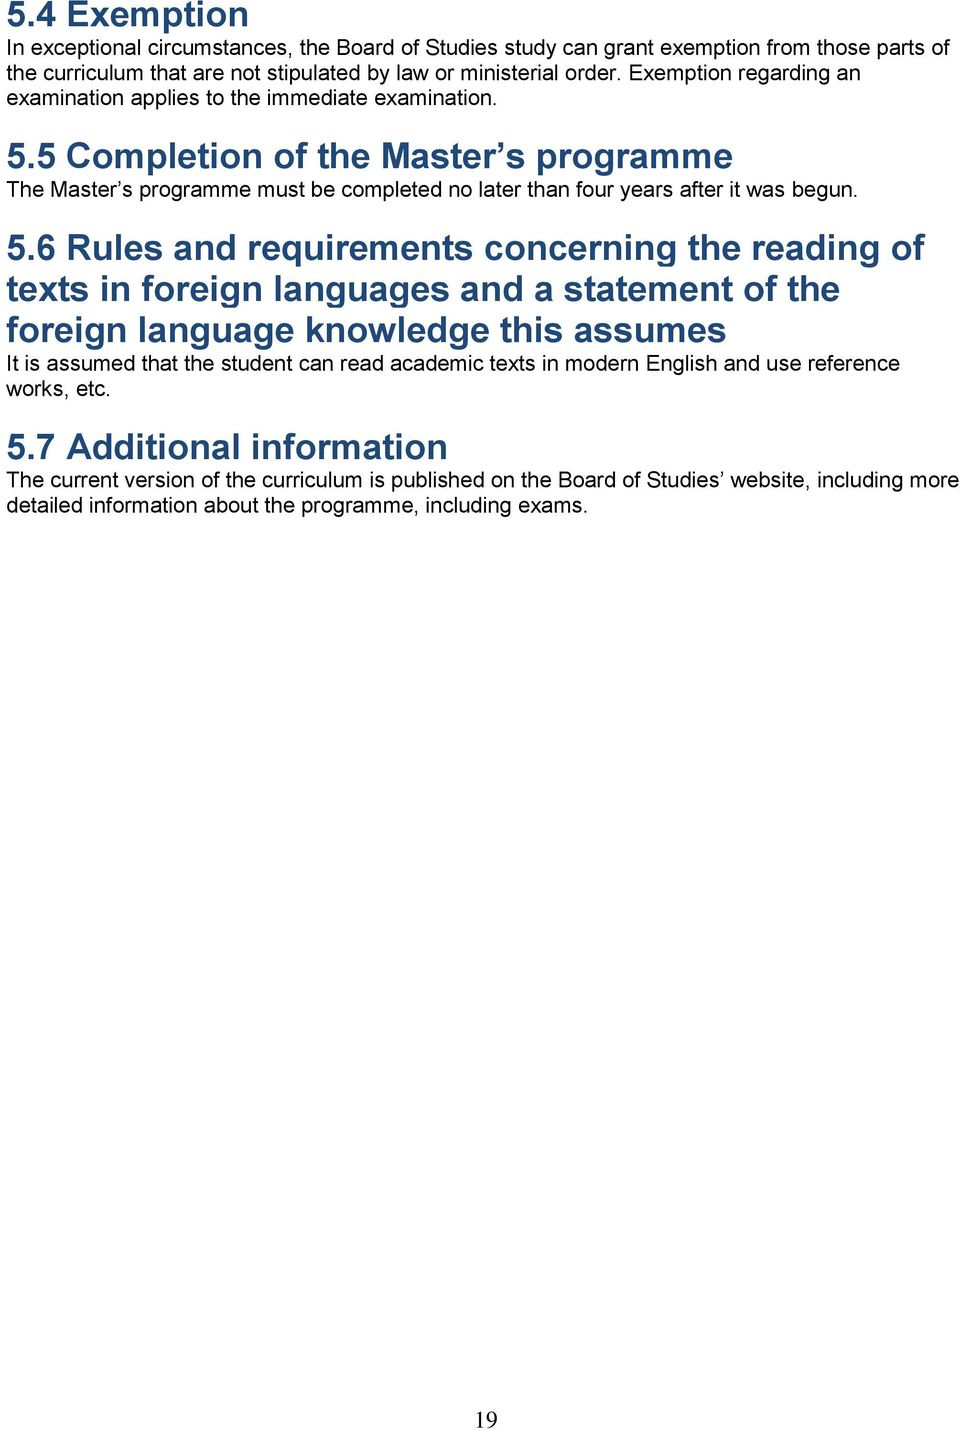 5.6 Rules and requirements concerning the reading of texts in foreign languages and a statement of the foreign language knowledge this assumes It is assumed that the student can read academic texts